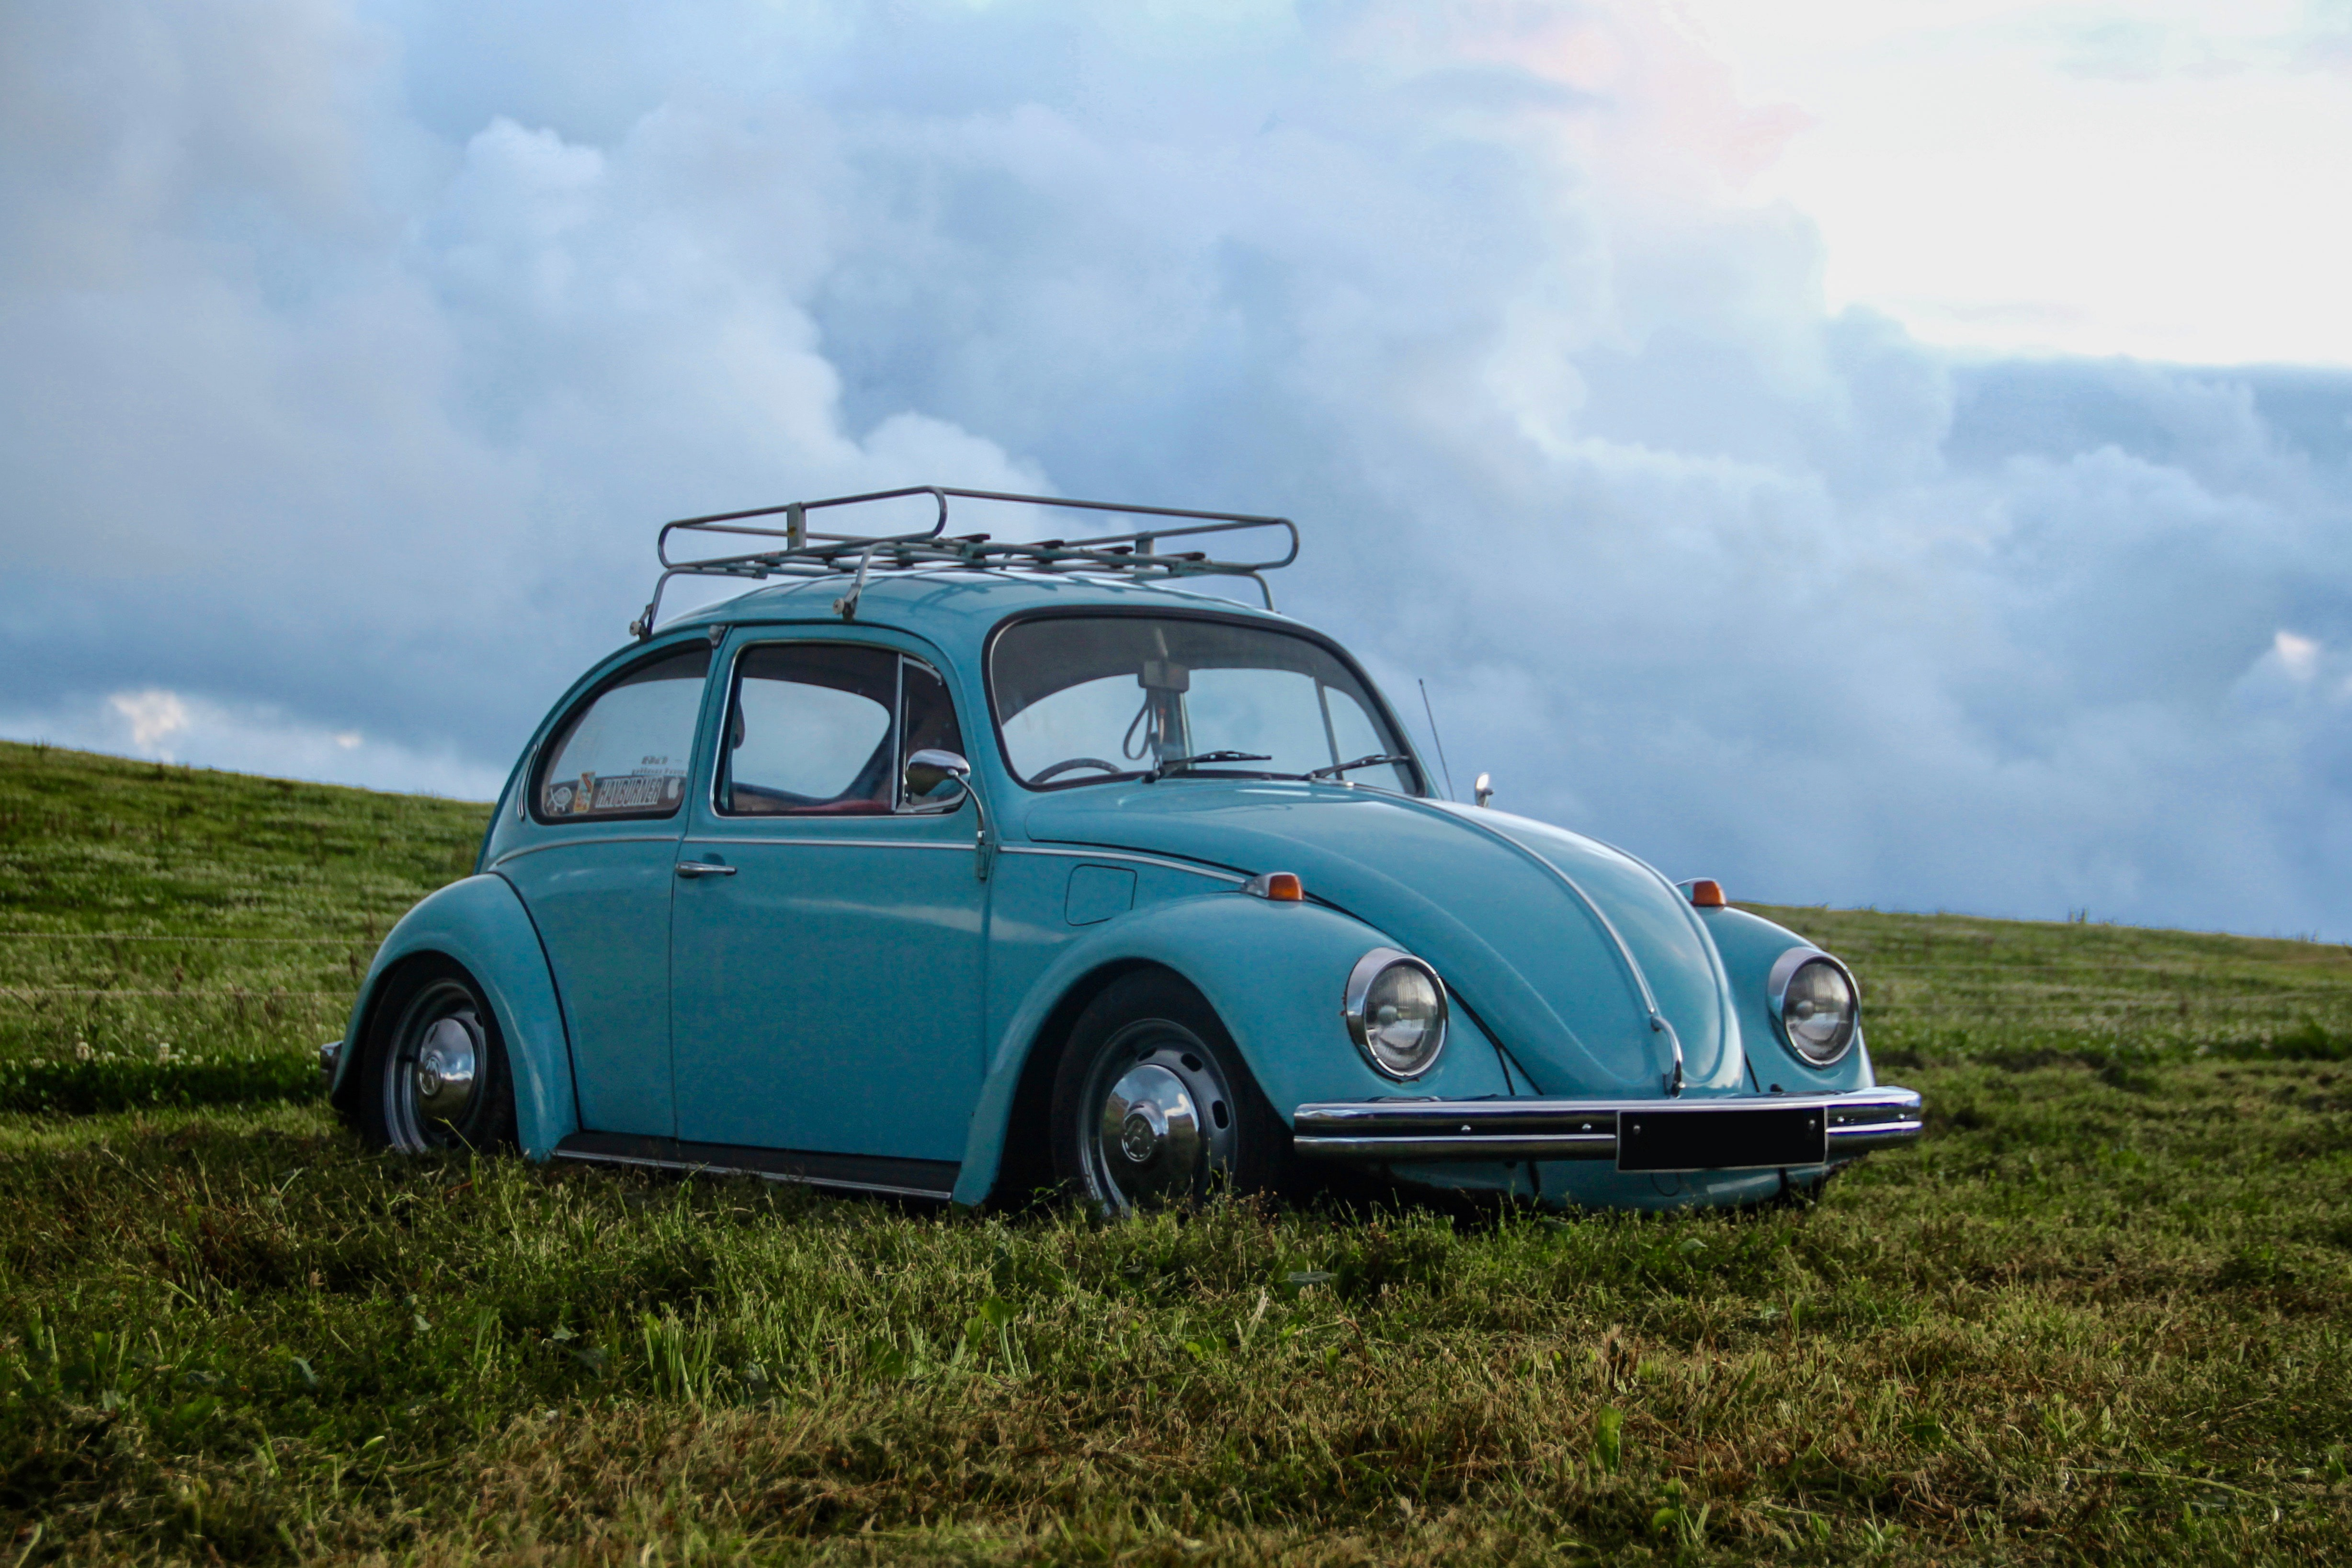 blue Volkswagen Beetle on grass field